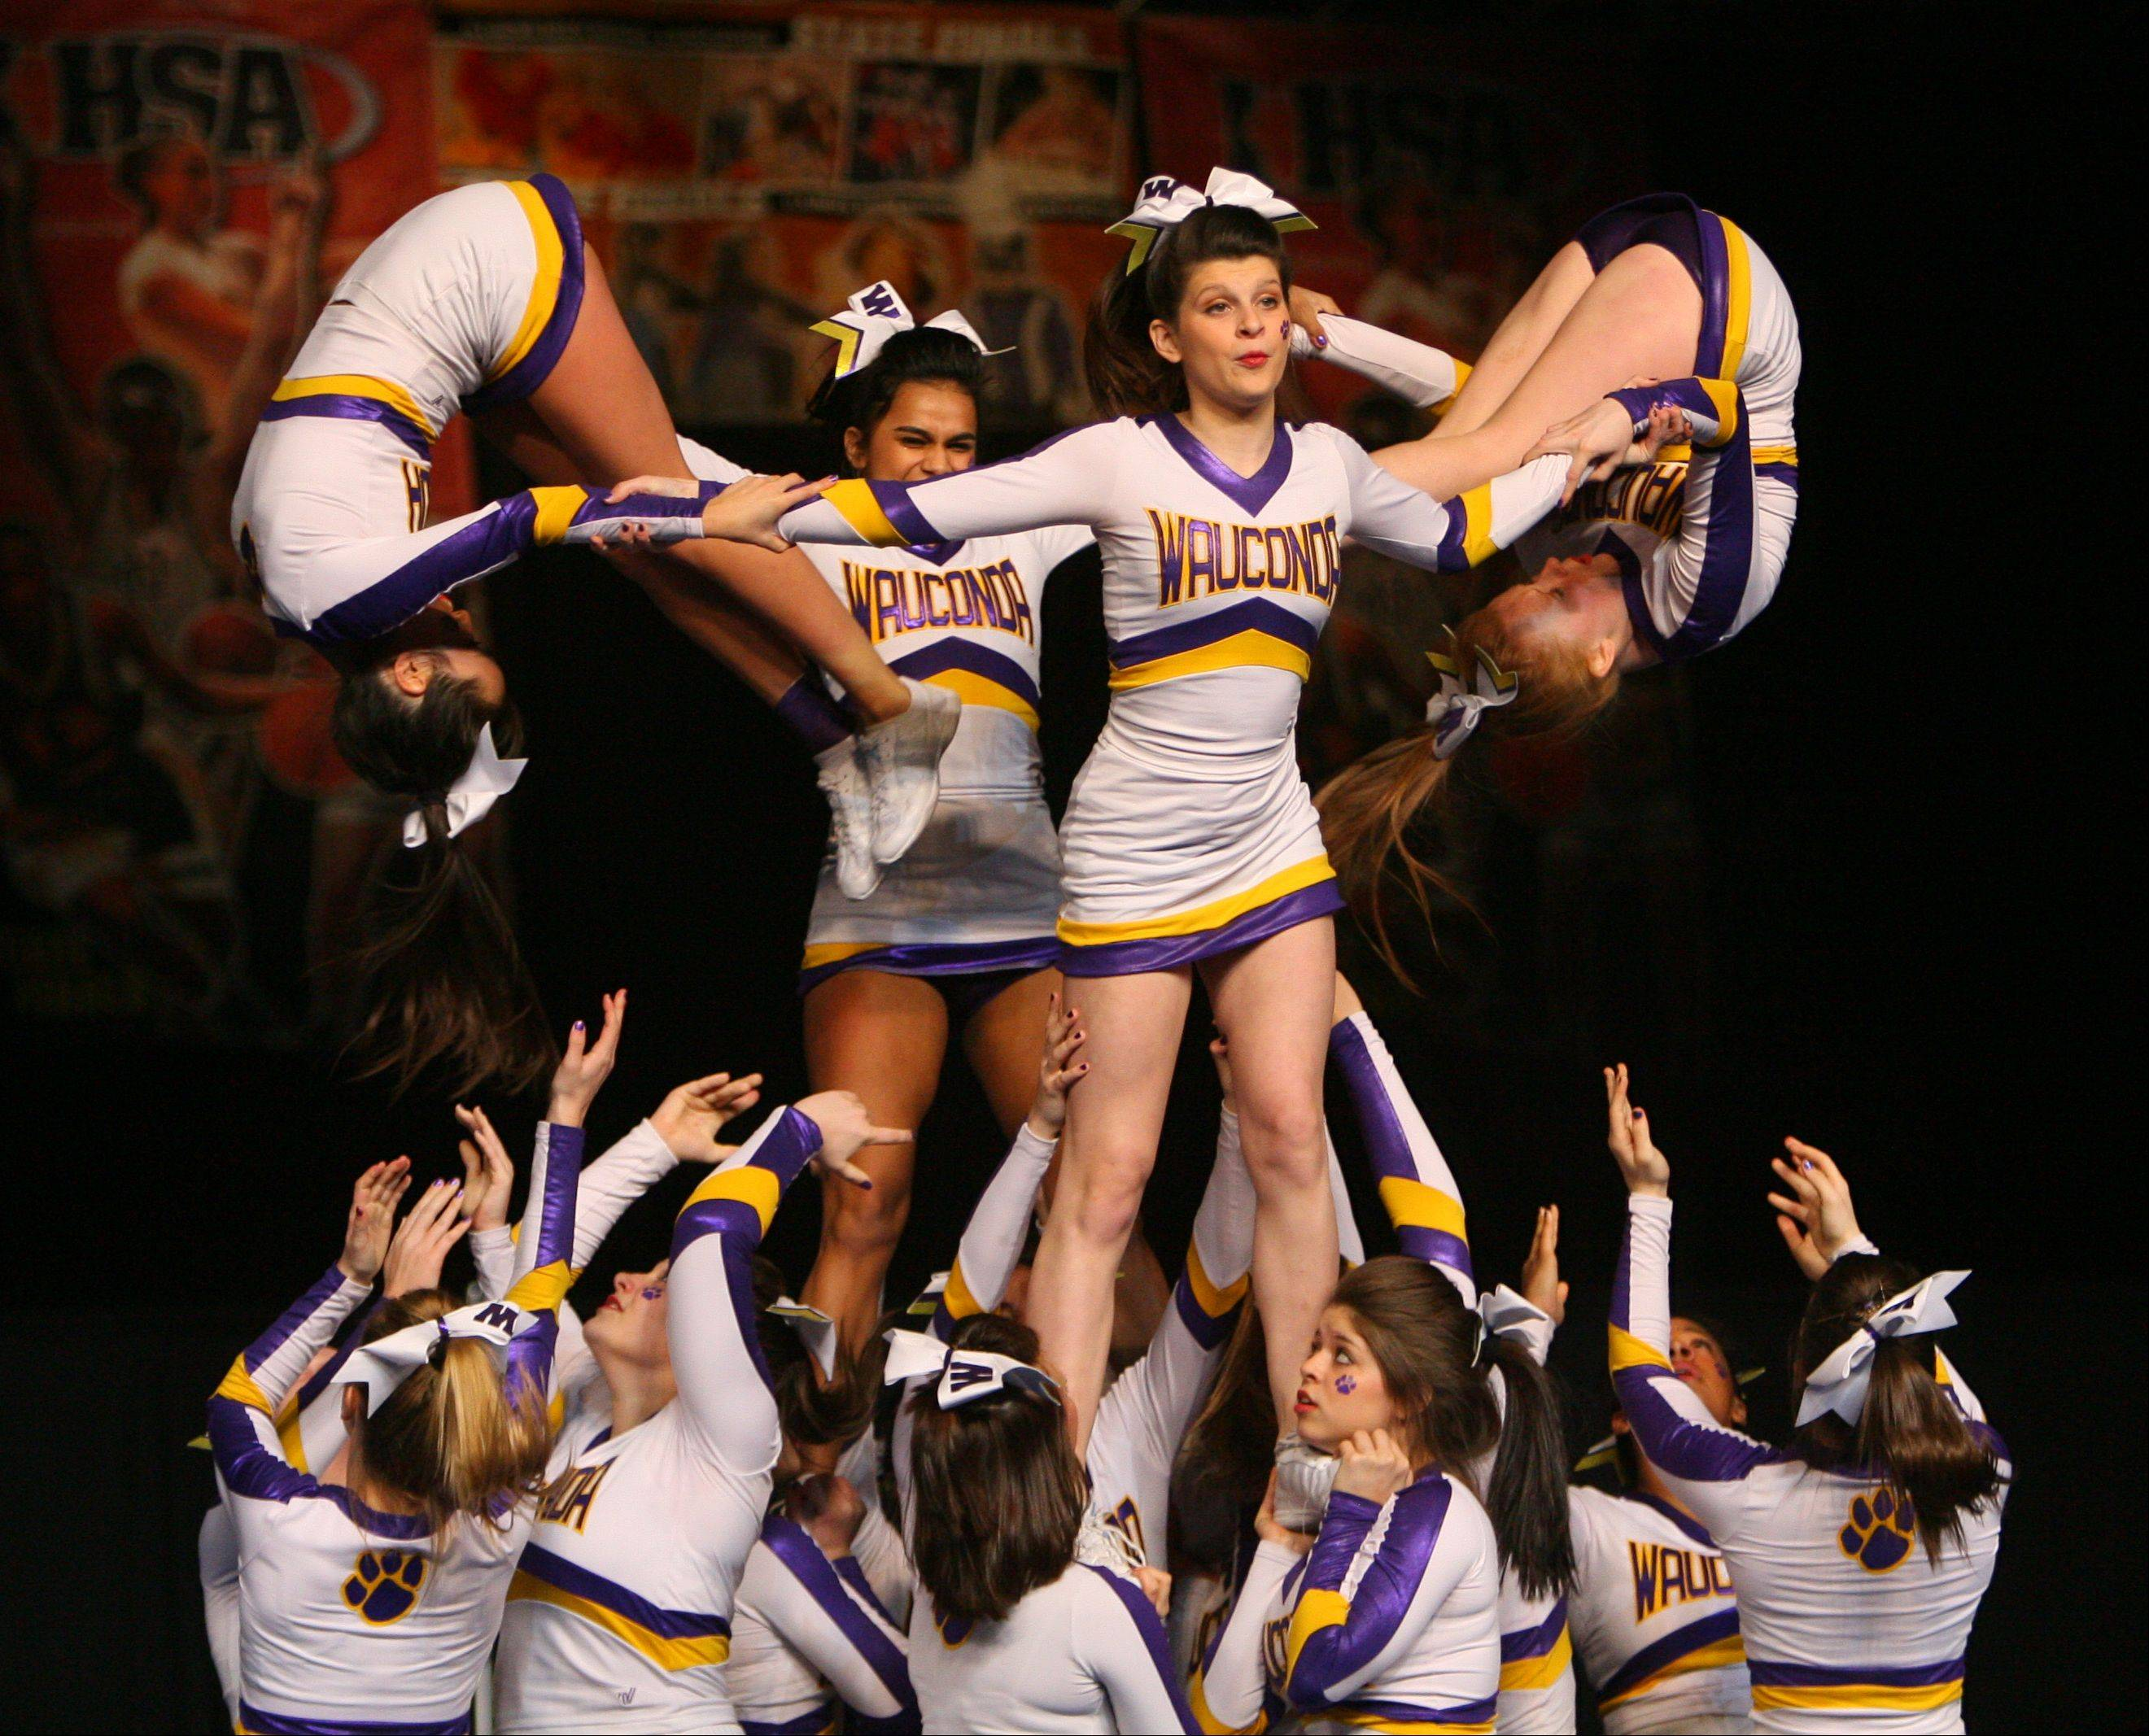 Wauconda High School participates in the IHSA Competitive Cheerleading finals on Saturday, Feb. 2 at the U.S. Cellular Coliseum in Bloomington.